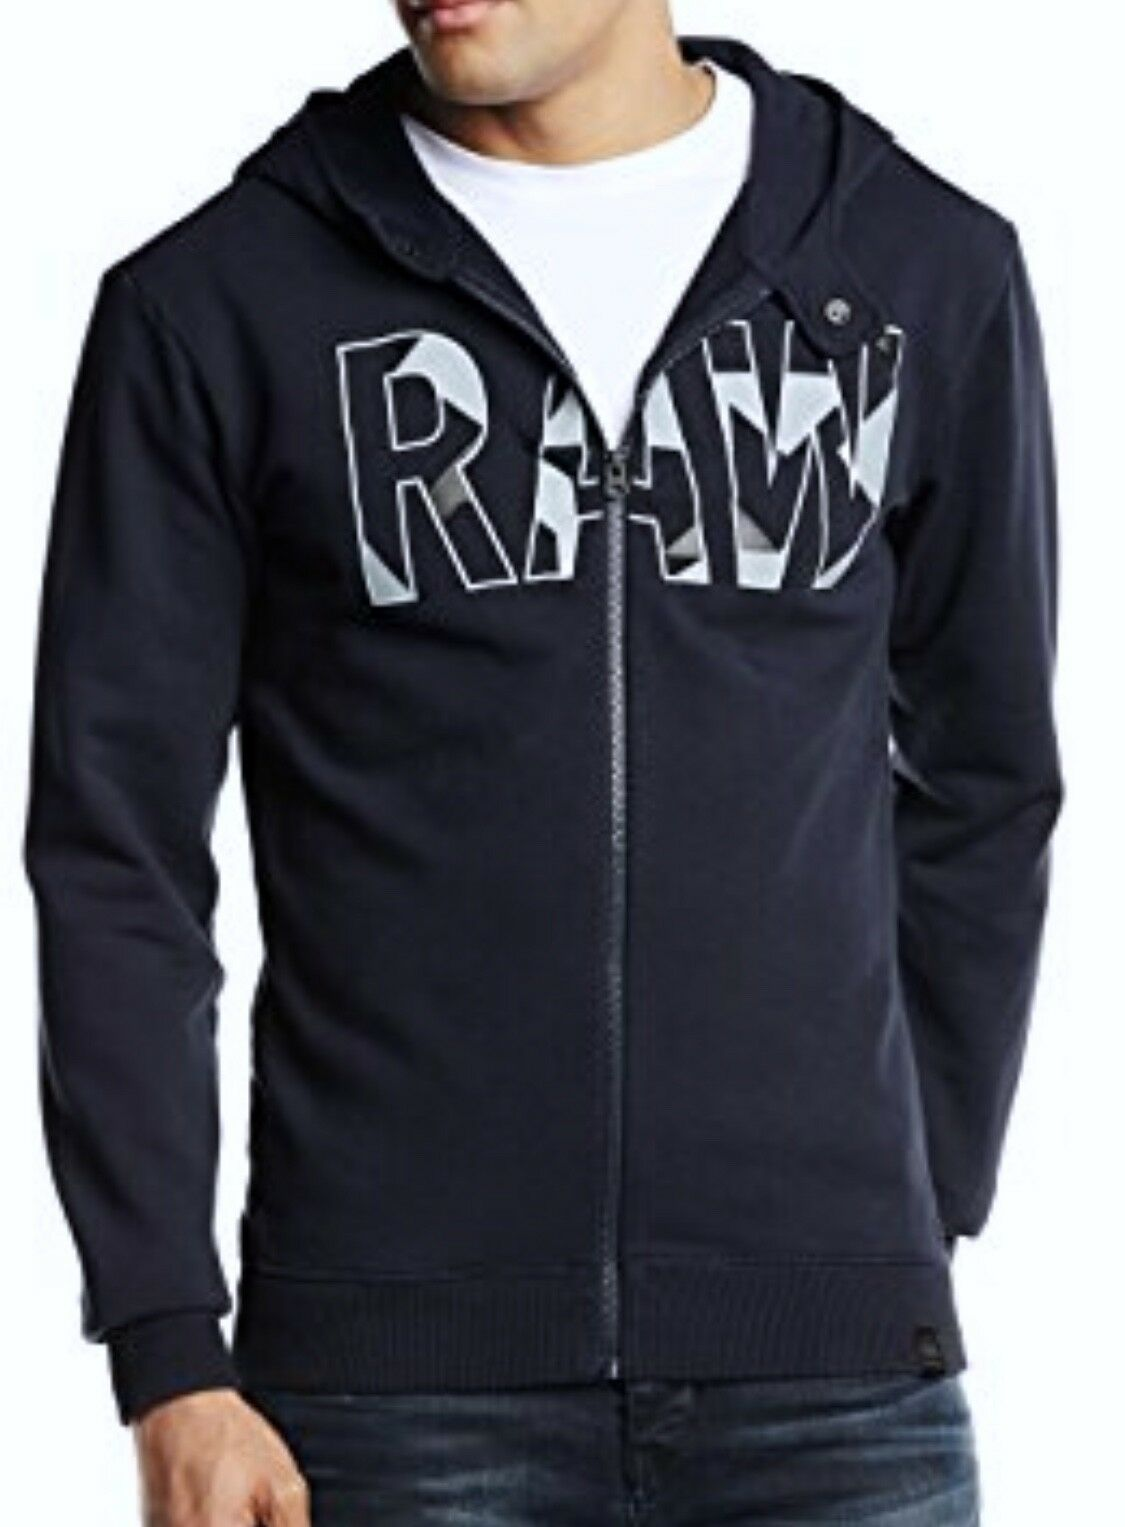 G STAR RAW Moiric Hooded Vest Mazarine Blau Fleece Full Zip Hoodie  Herren Sz 2XL